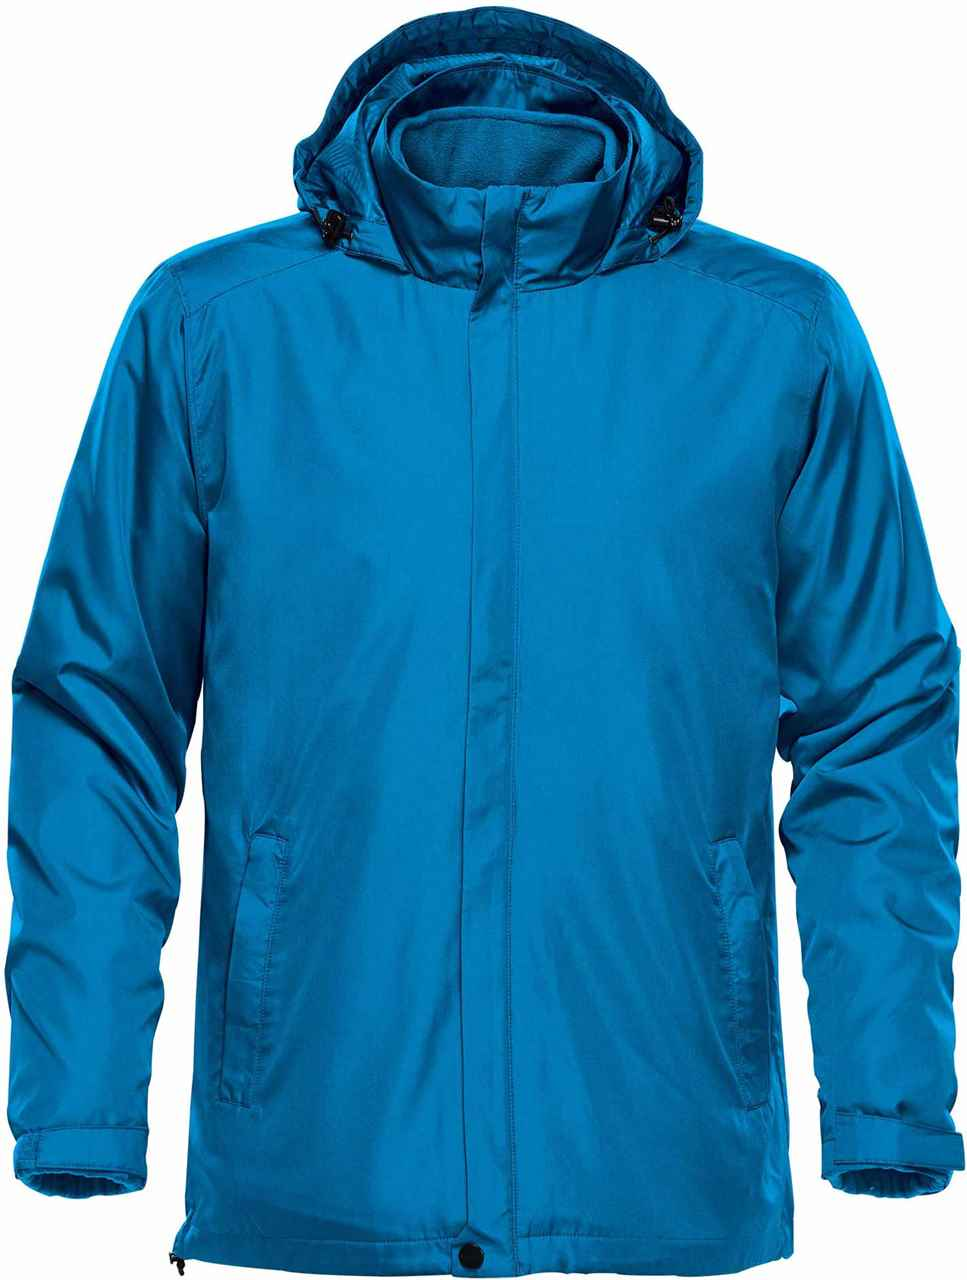 Picture of Stormtech Men's Nautilus 3-in-1 Jacket